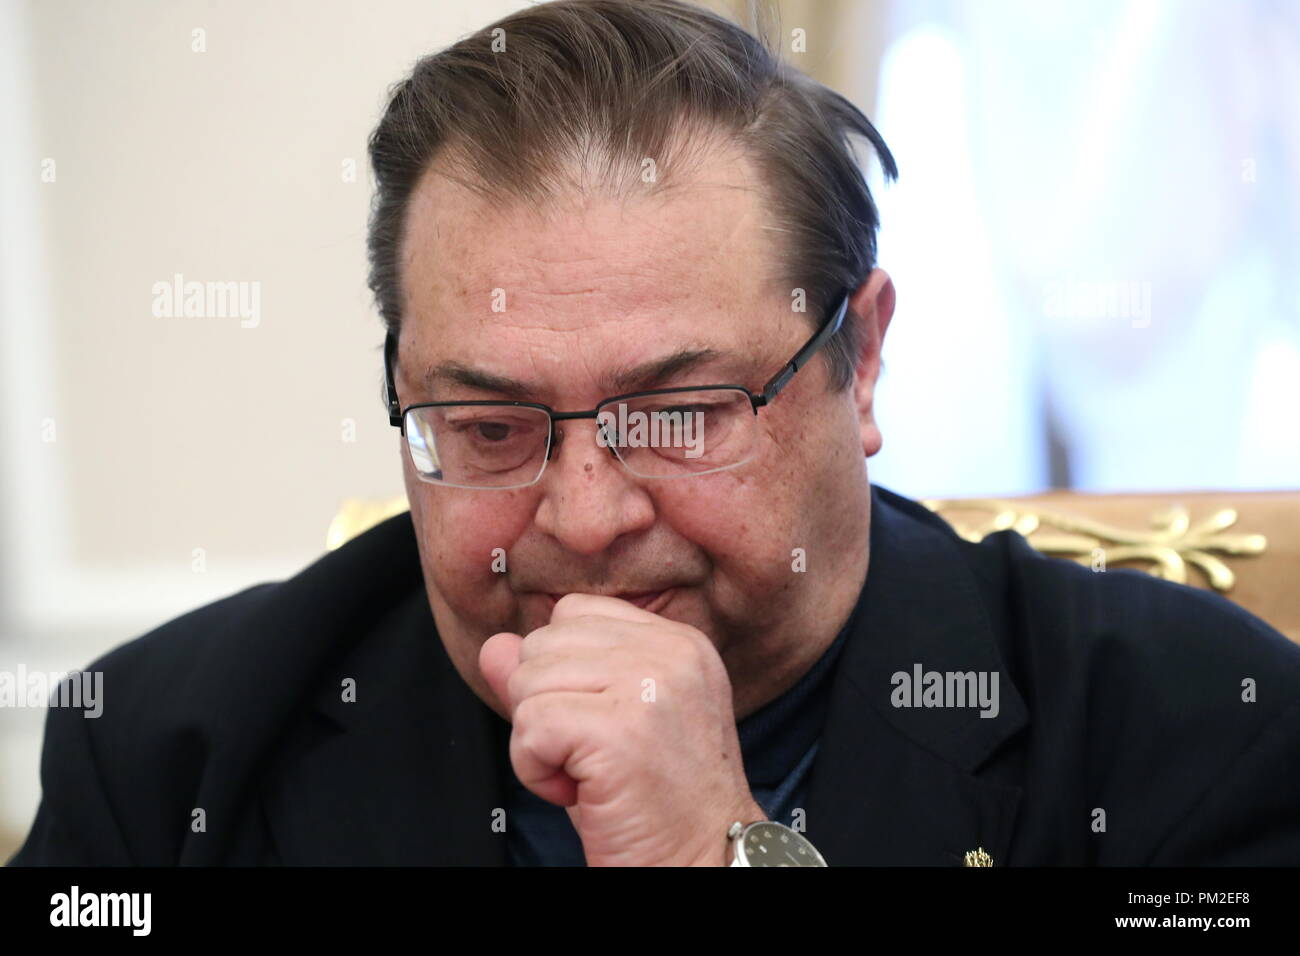 Moscow, Russia. 17th Sep, 2018. MOSCOW, RUSSIA - SEPTEMBER 17, 2018: Yuri Petrov, a member of the Presidium of the Russian Historical Society, director of the Russian History Institute at the Russian Academy of Sciences (RAS), during a meeting of the Editorial Board of the Presidential Historical Library project at the offices of the Russian Historical Society. Stanislav Krasilnikov/TASS Credit: ITAR-TASS News Agency/Alamy Live News - Stock Image